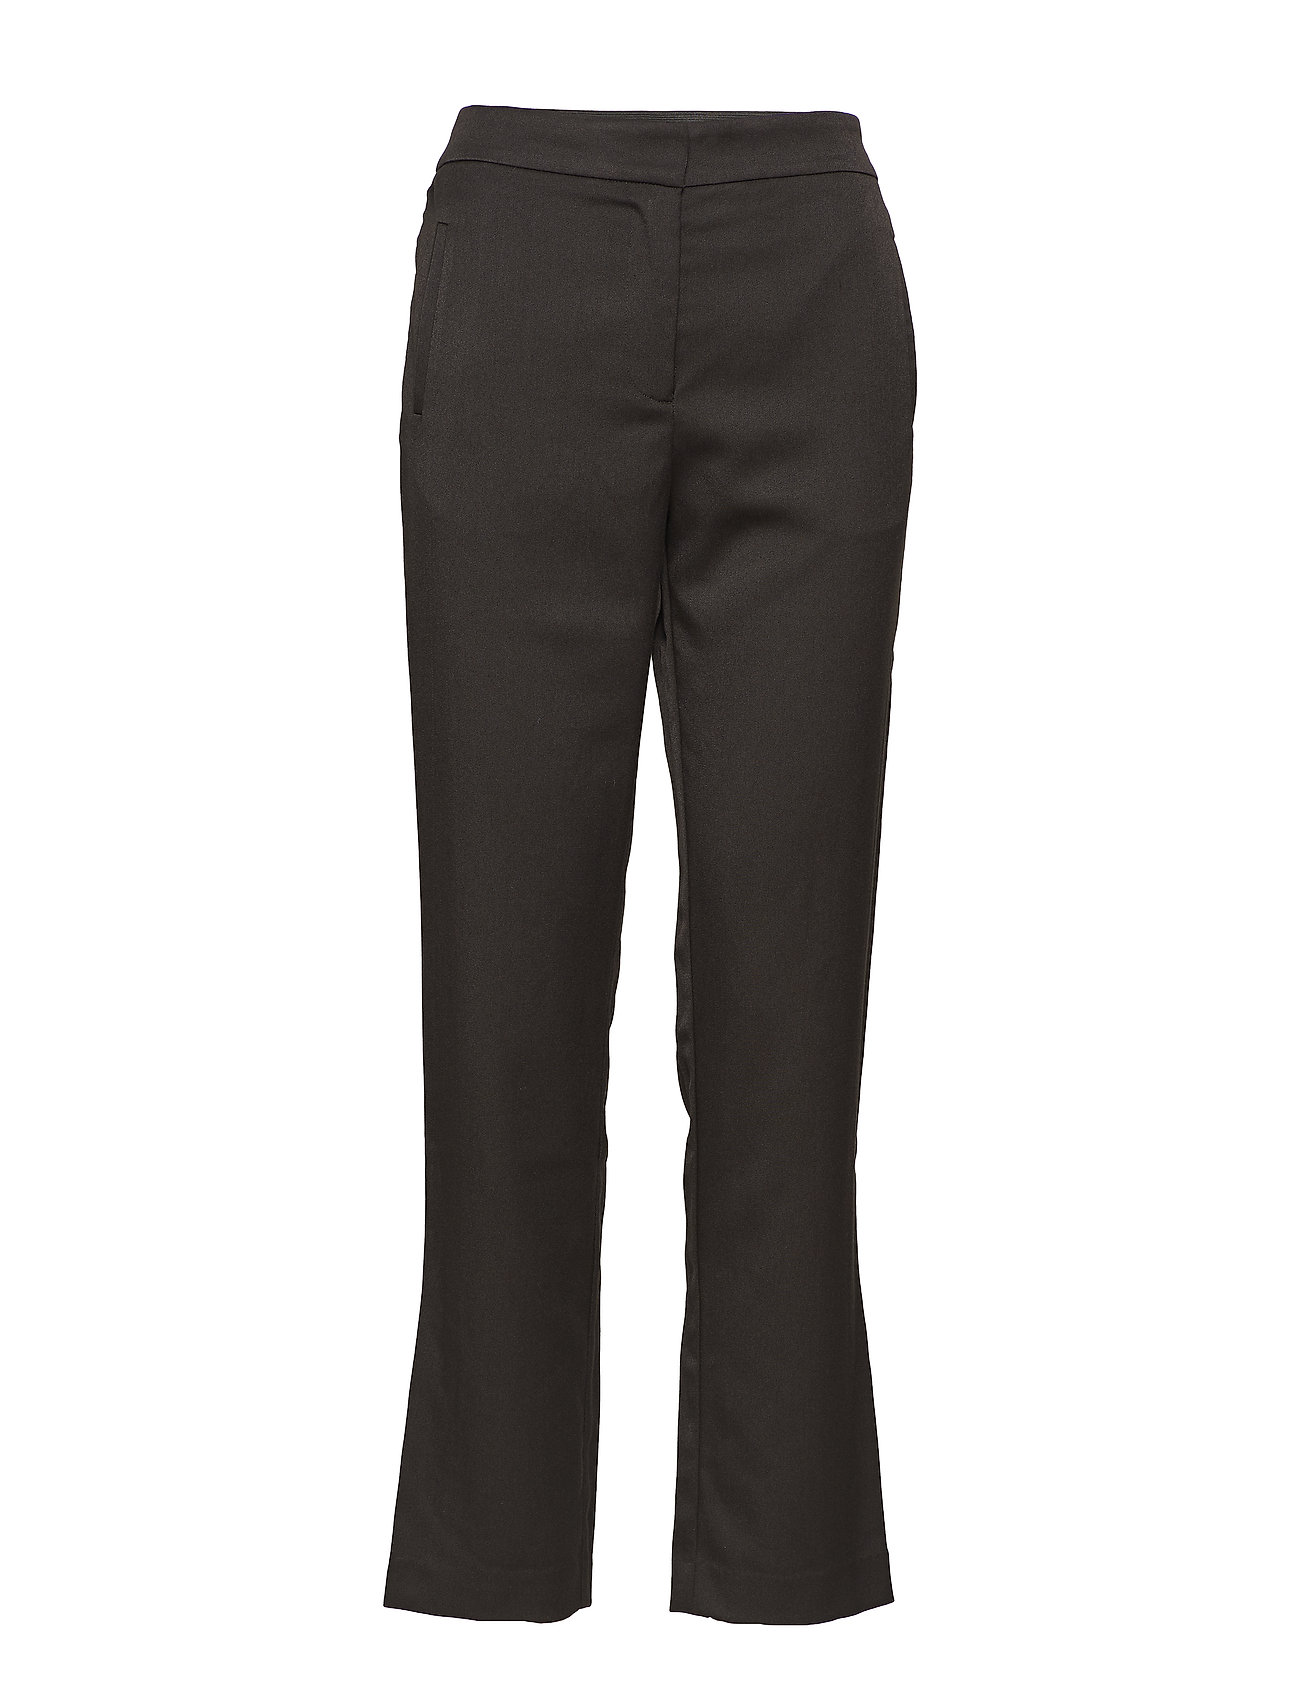 Soft Rebels Elena Pant w/ Stripe - 001 BLACK